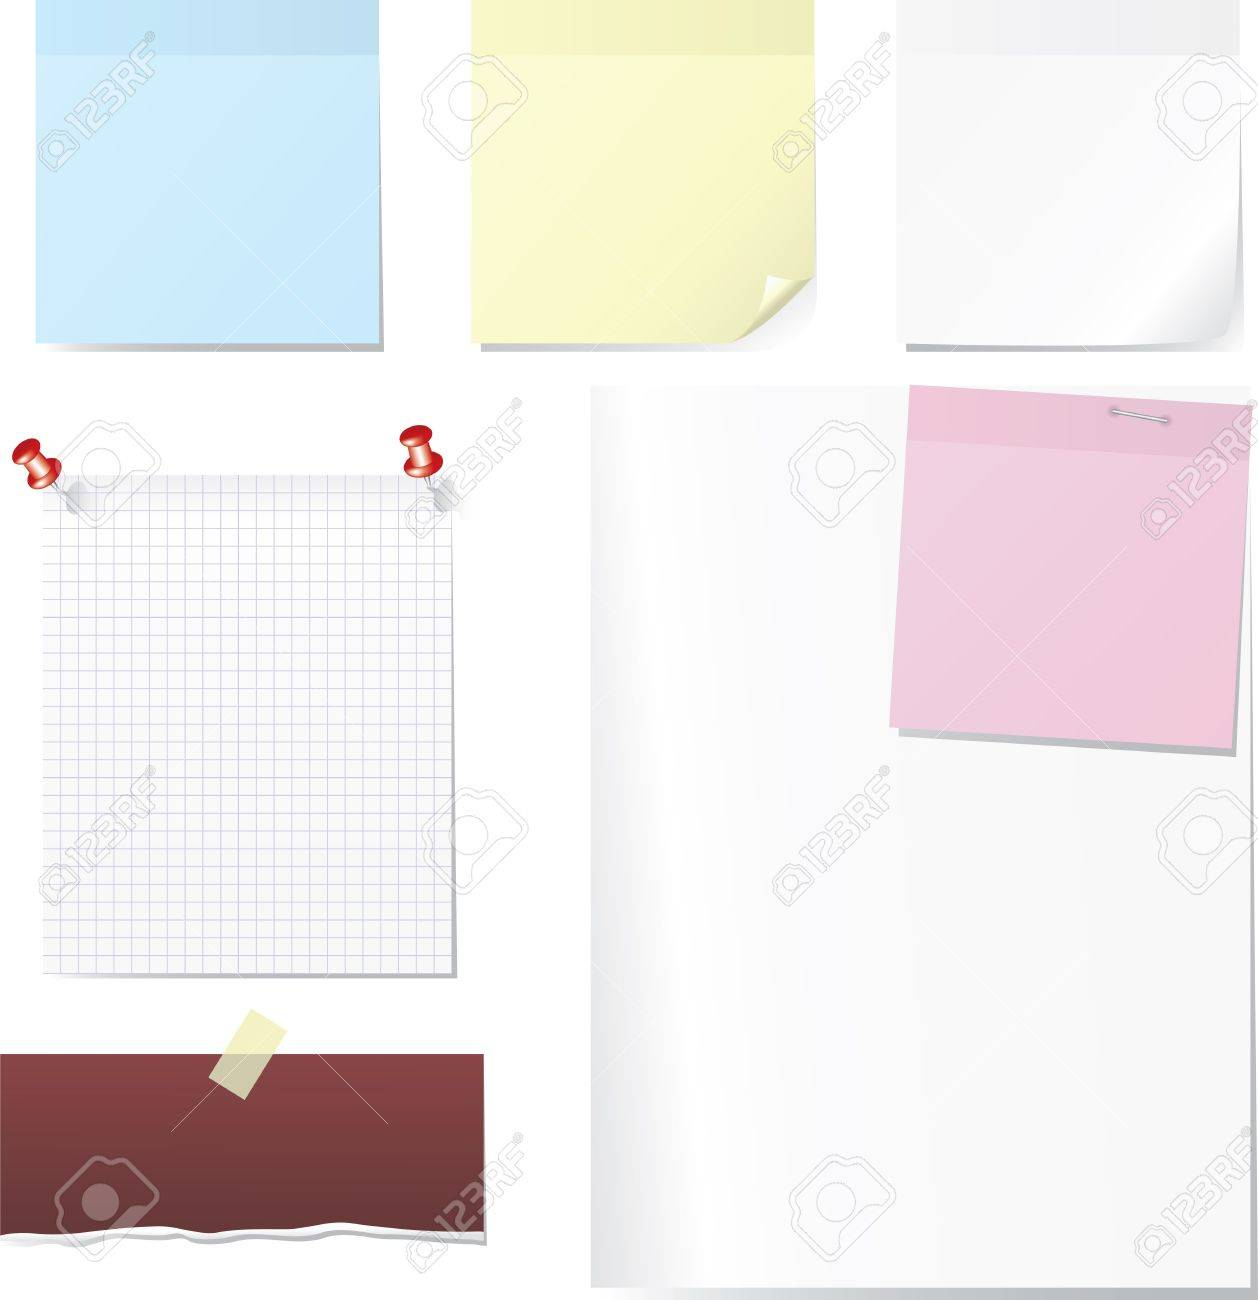 sheets of blank paper post and memo set pin scotch tape vector sheets of blank paper post and memo set pin scotch tape and paperclip set